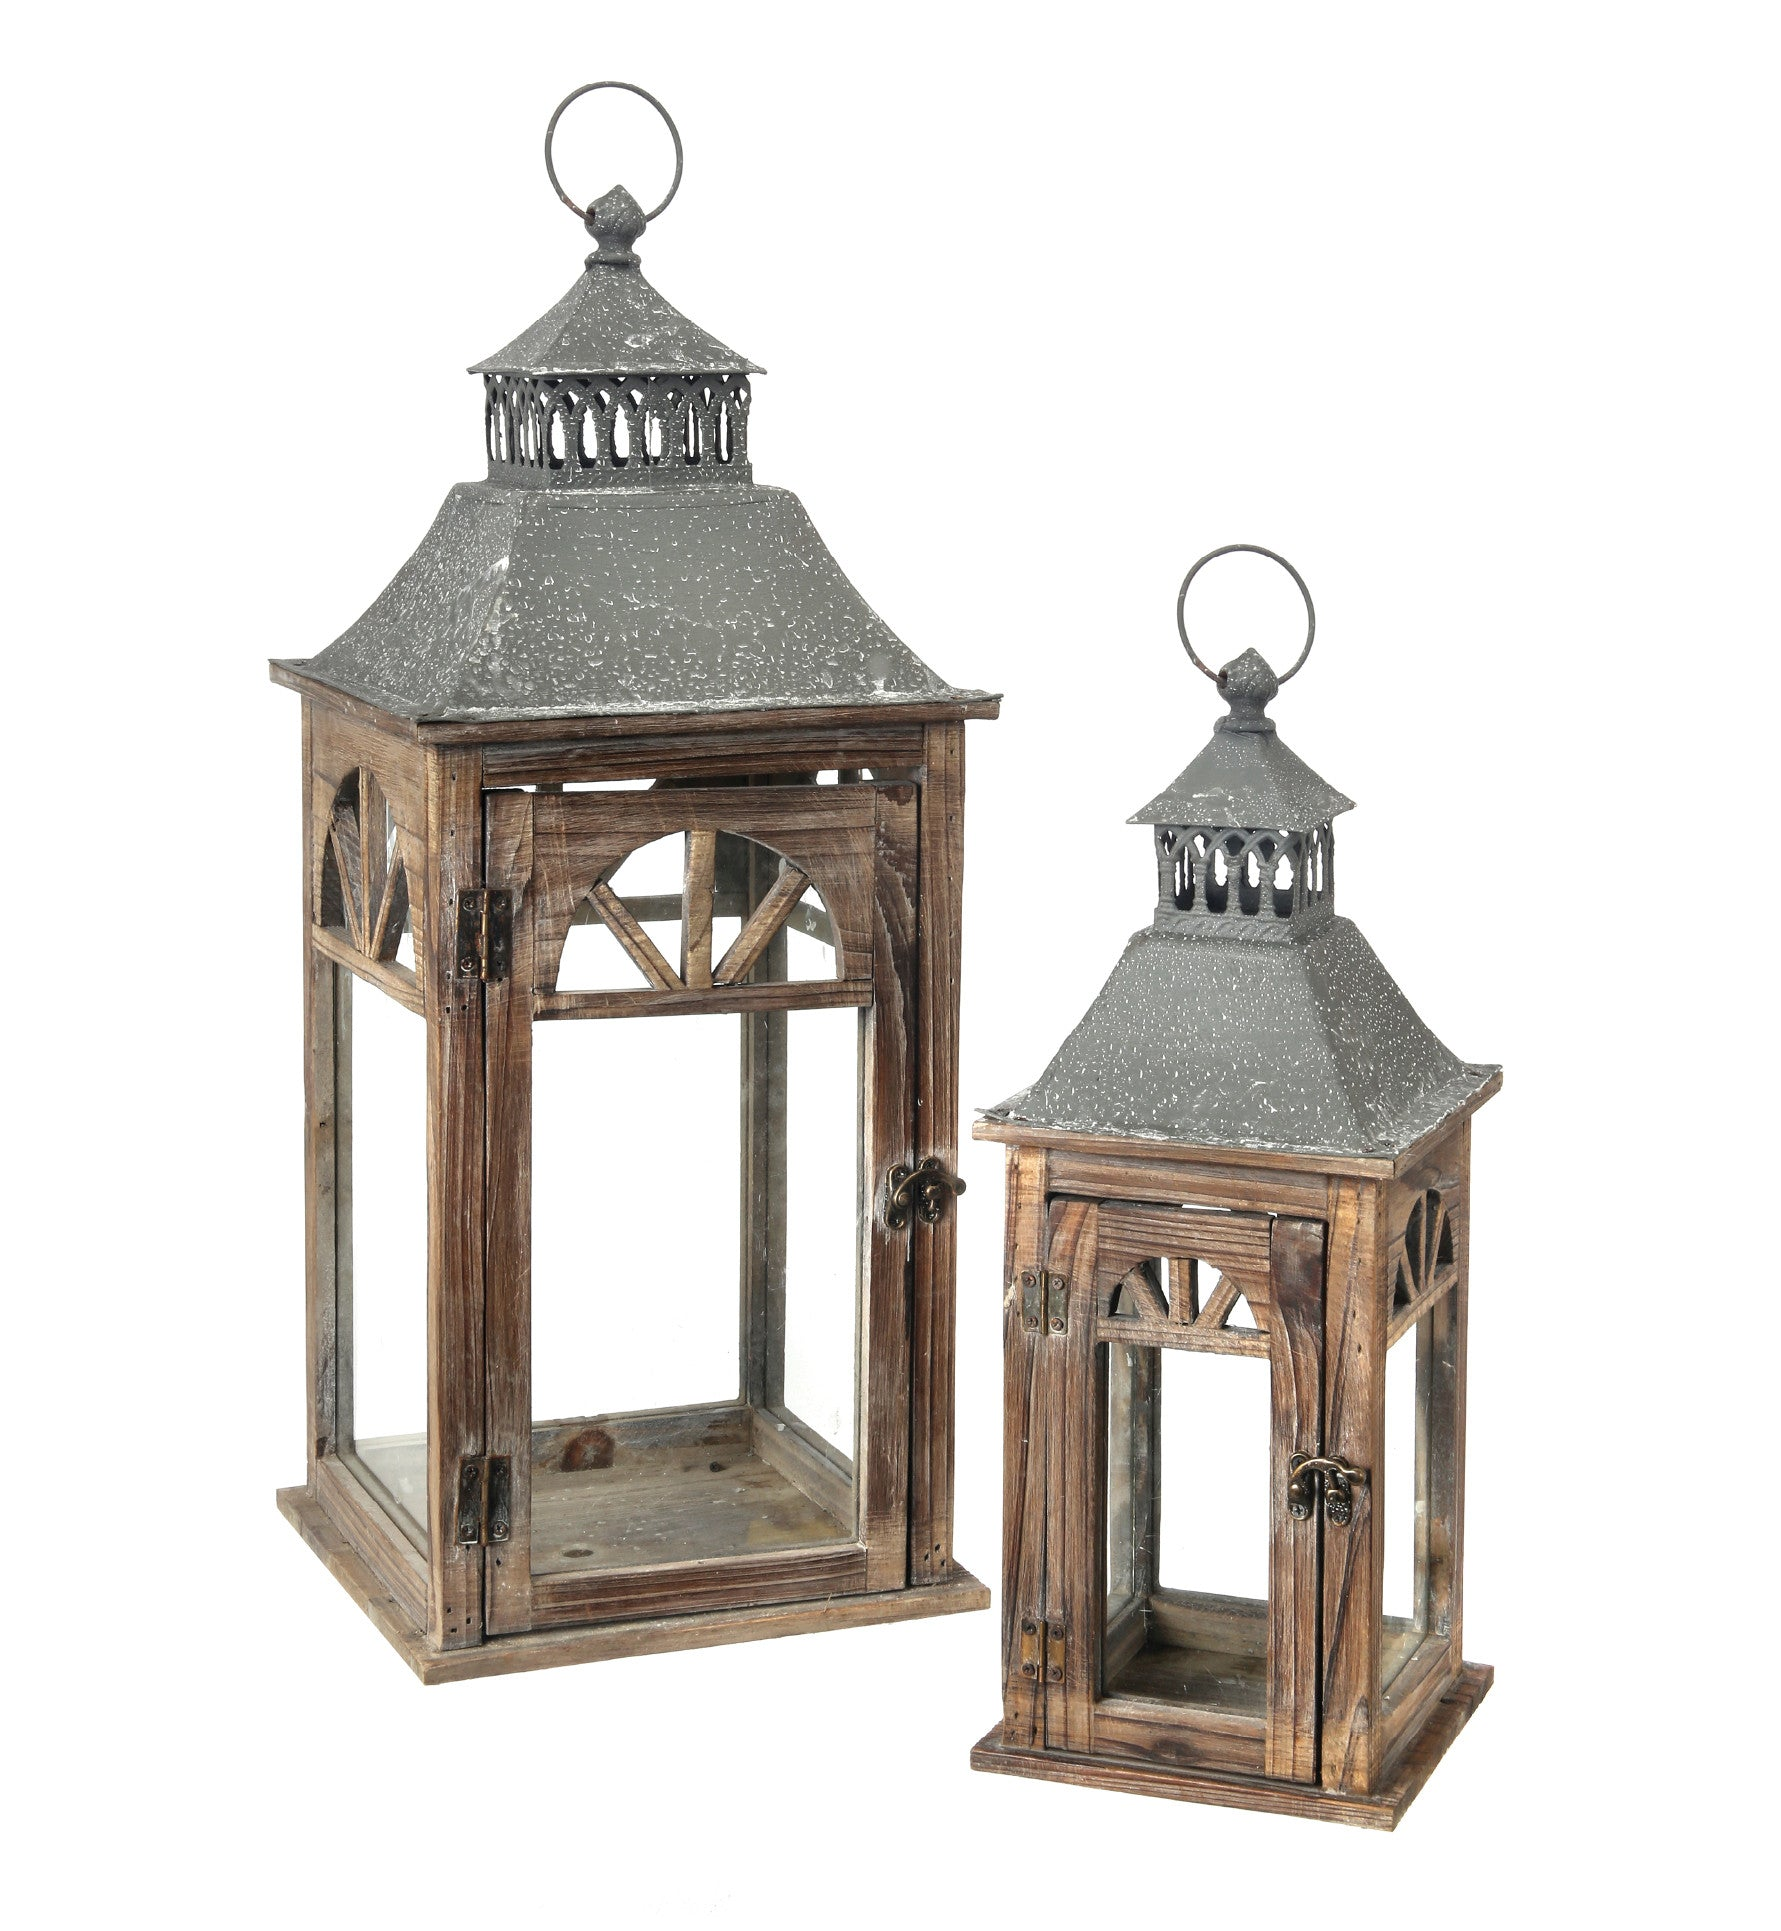 Natural Wood & Metal Arch Window Lanterns!